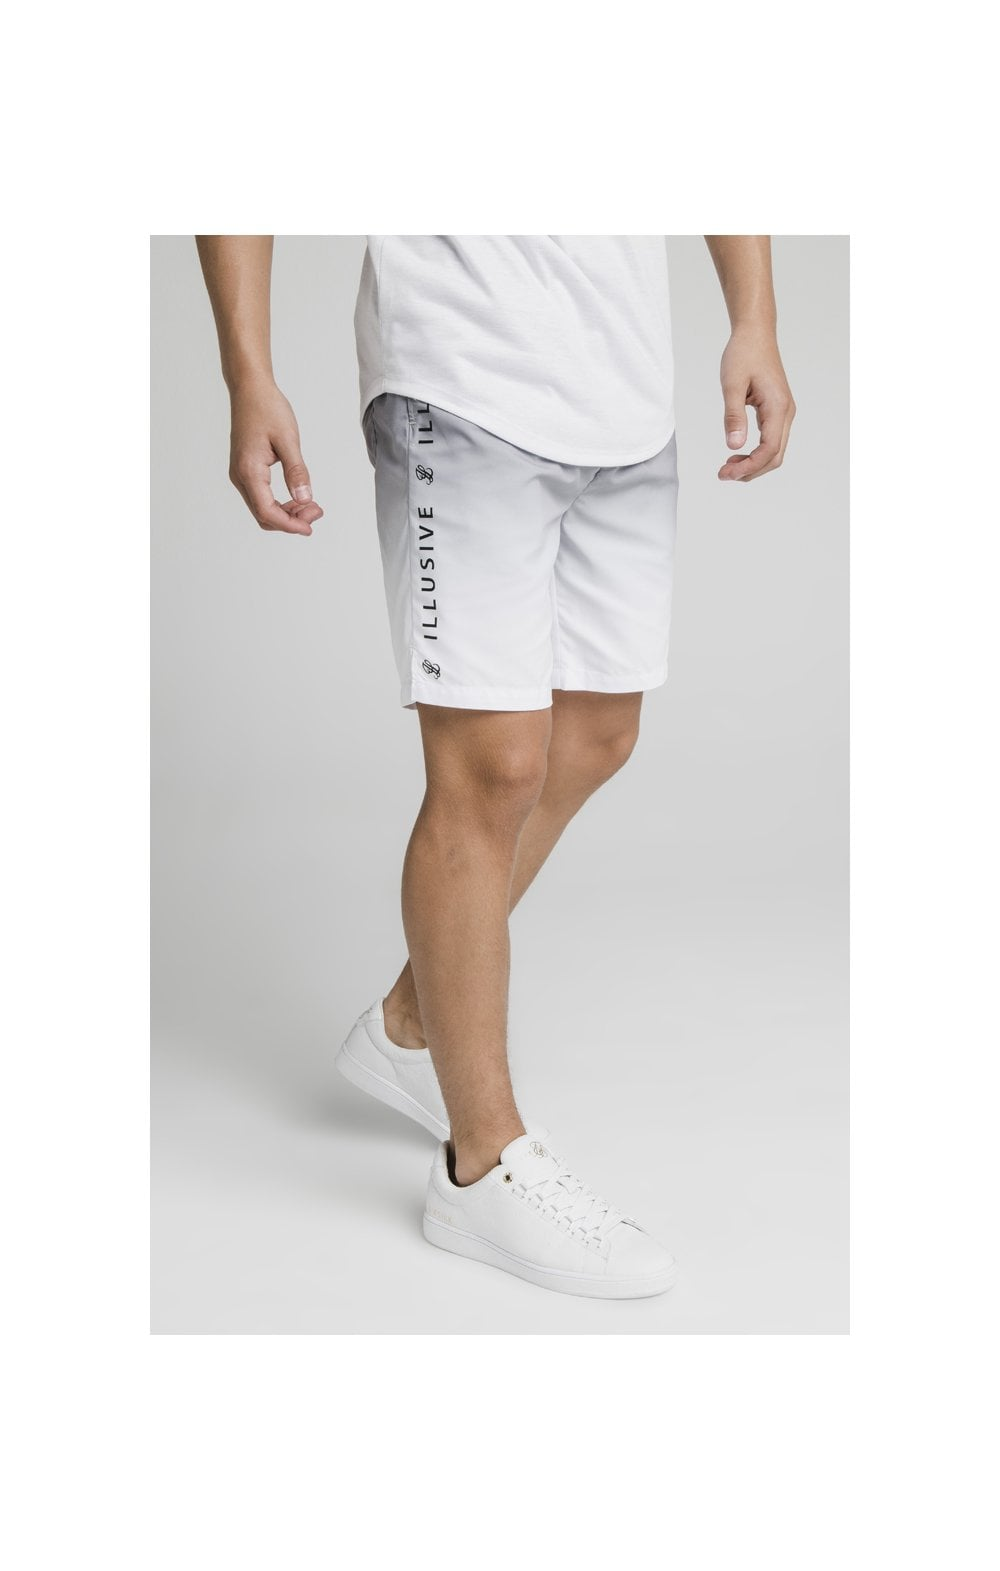 Illusive London Fade Swim Shorts - Grey & White